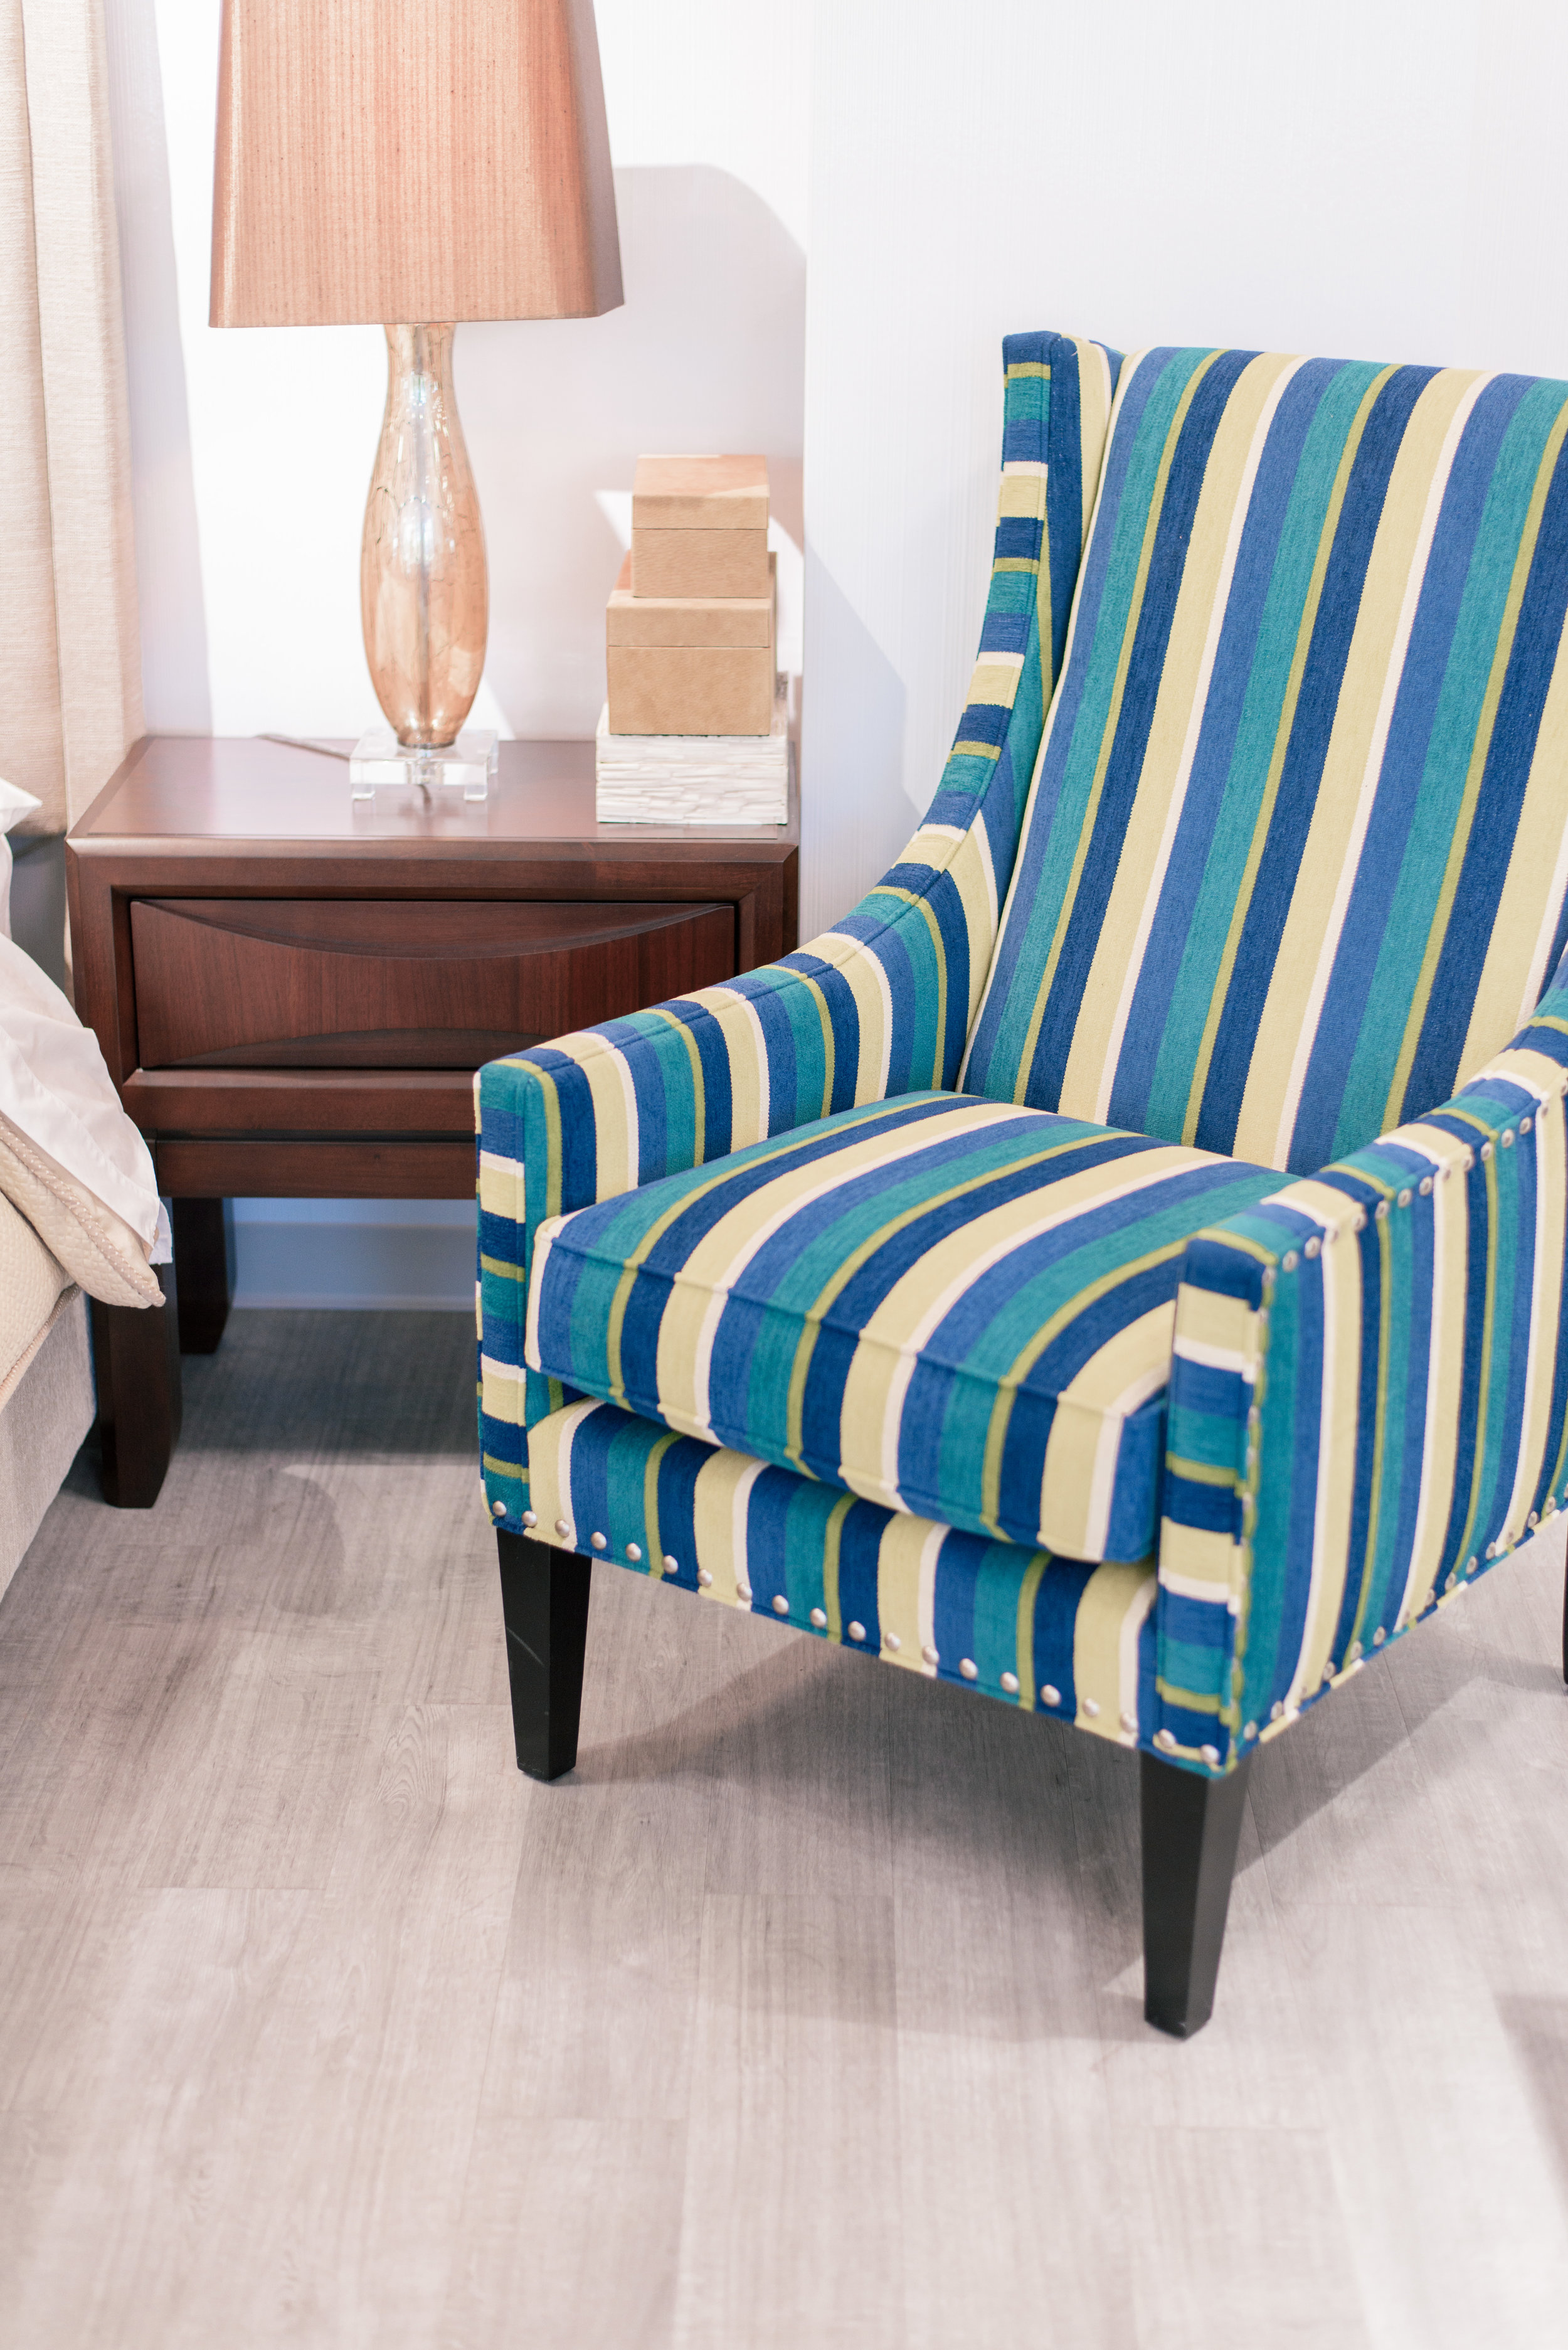 CORT furniture review featured by top US home decor blog, Love + Specs